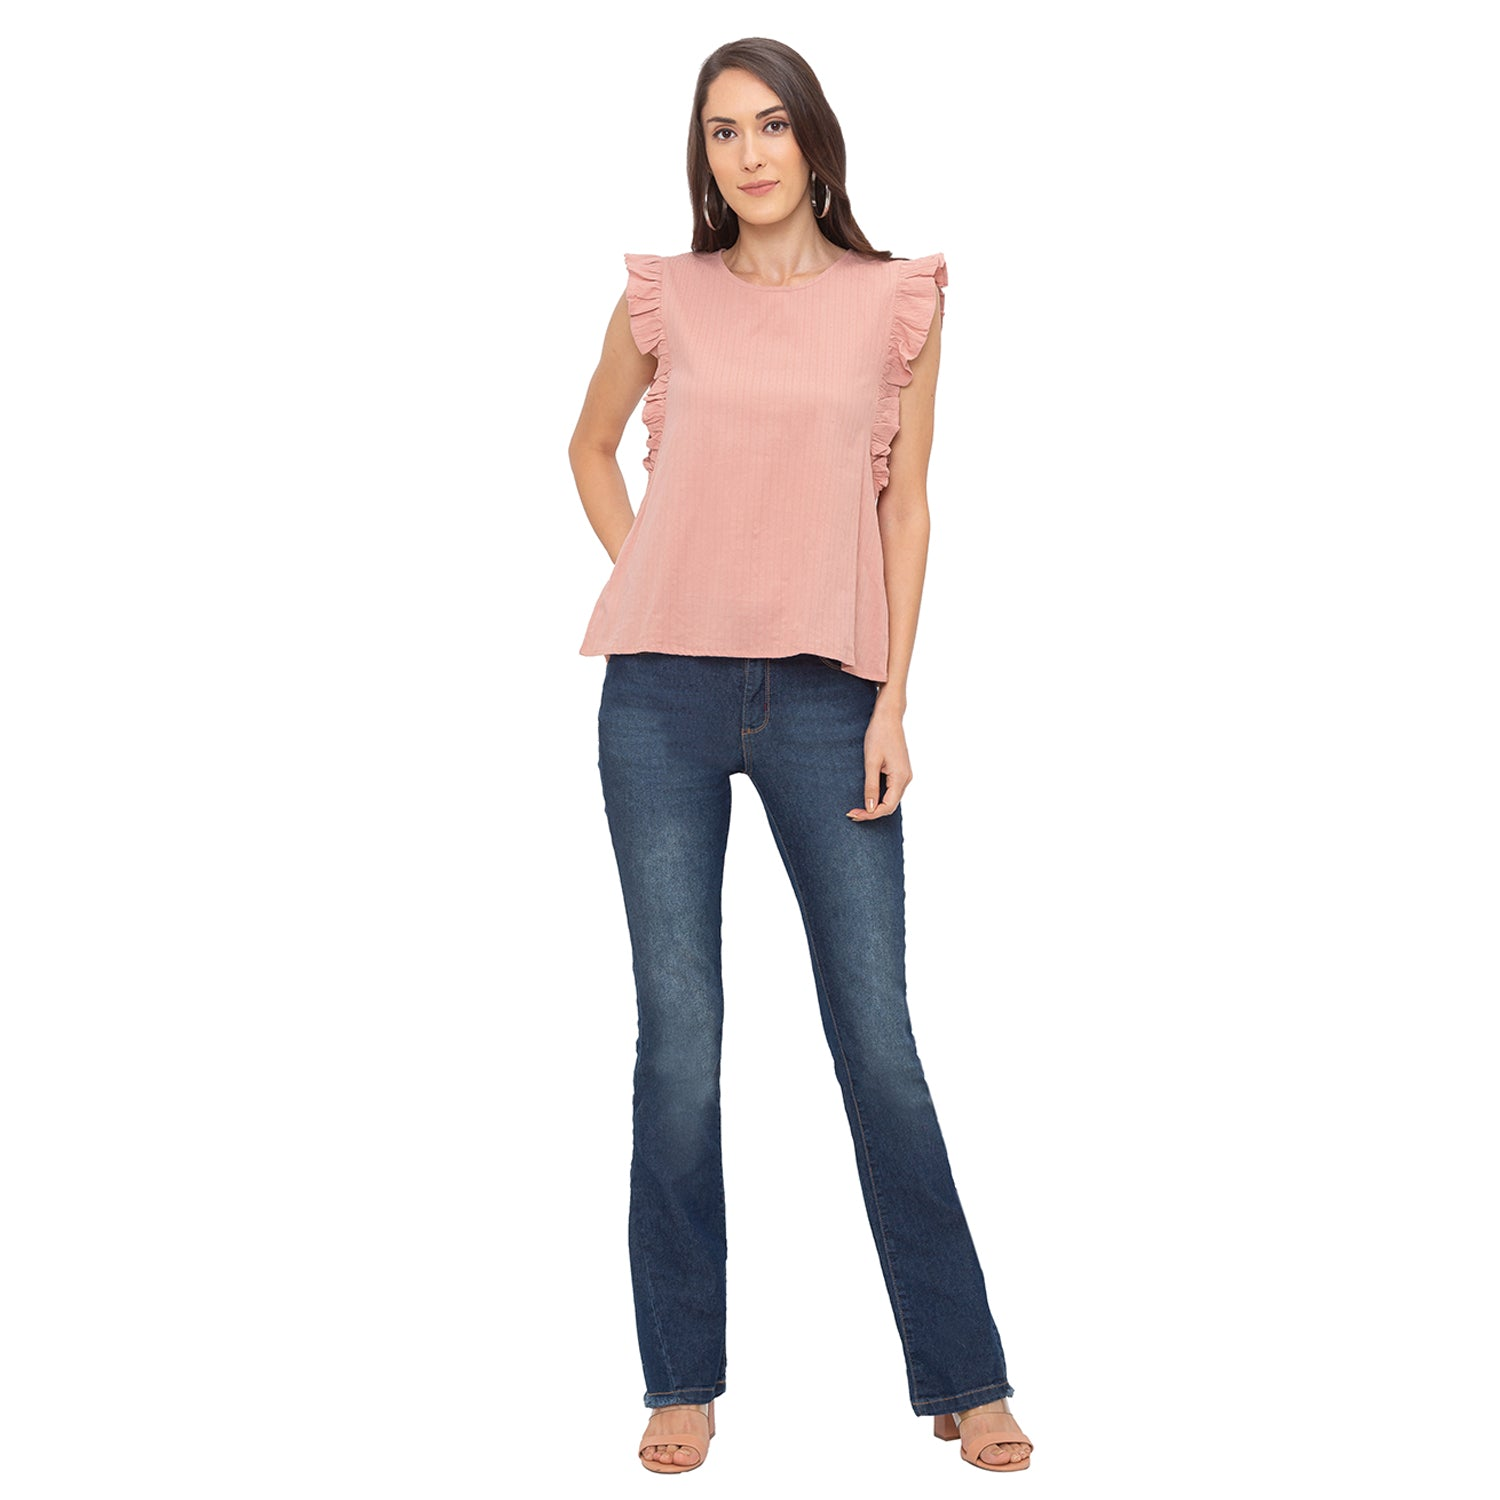 Globus Pink Striped Top-4